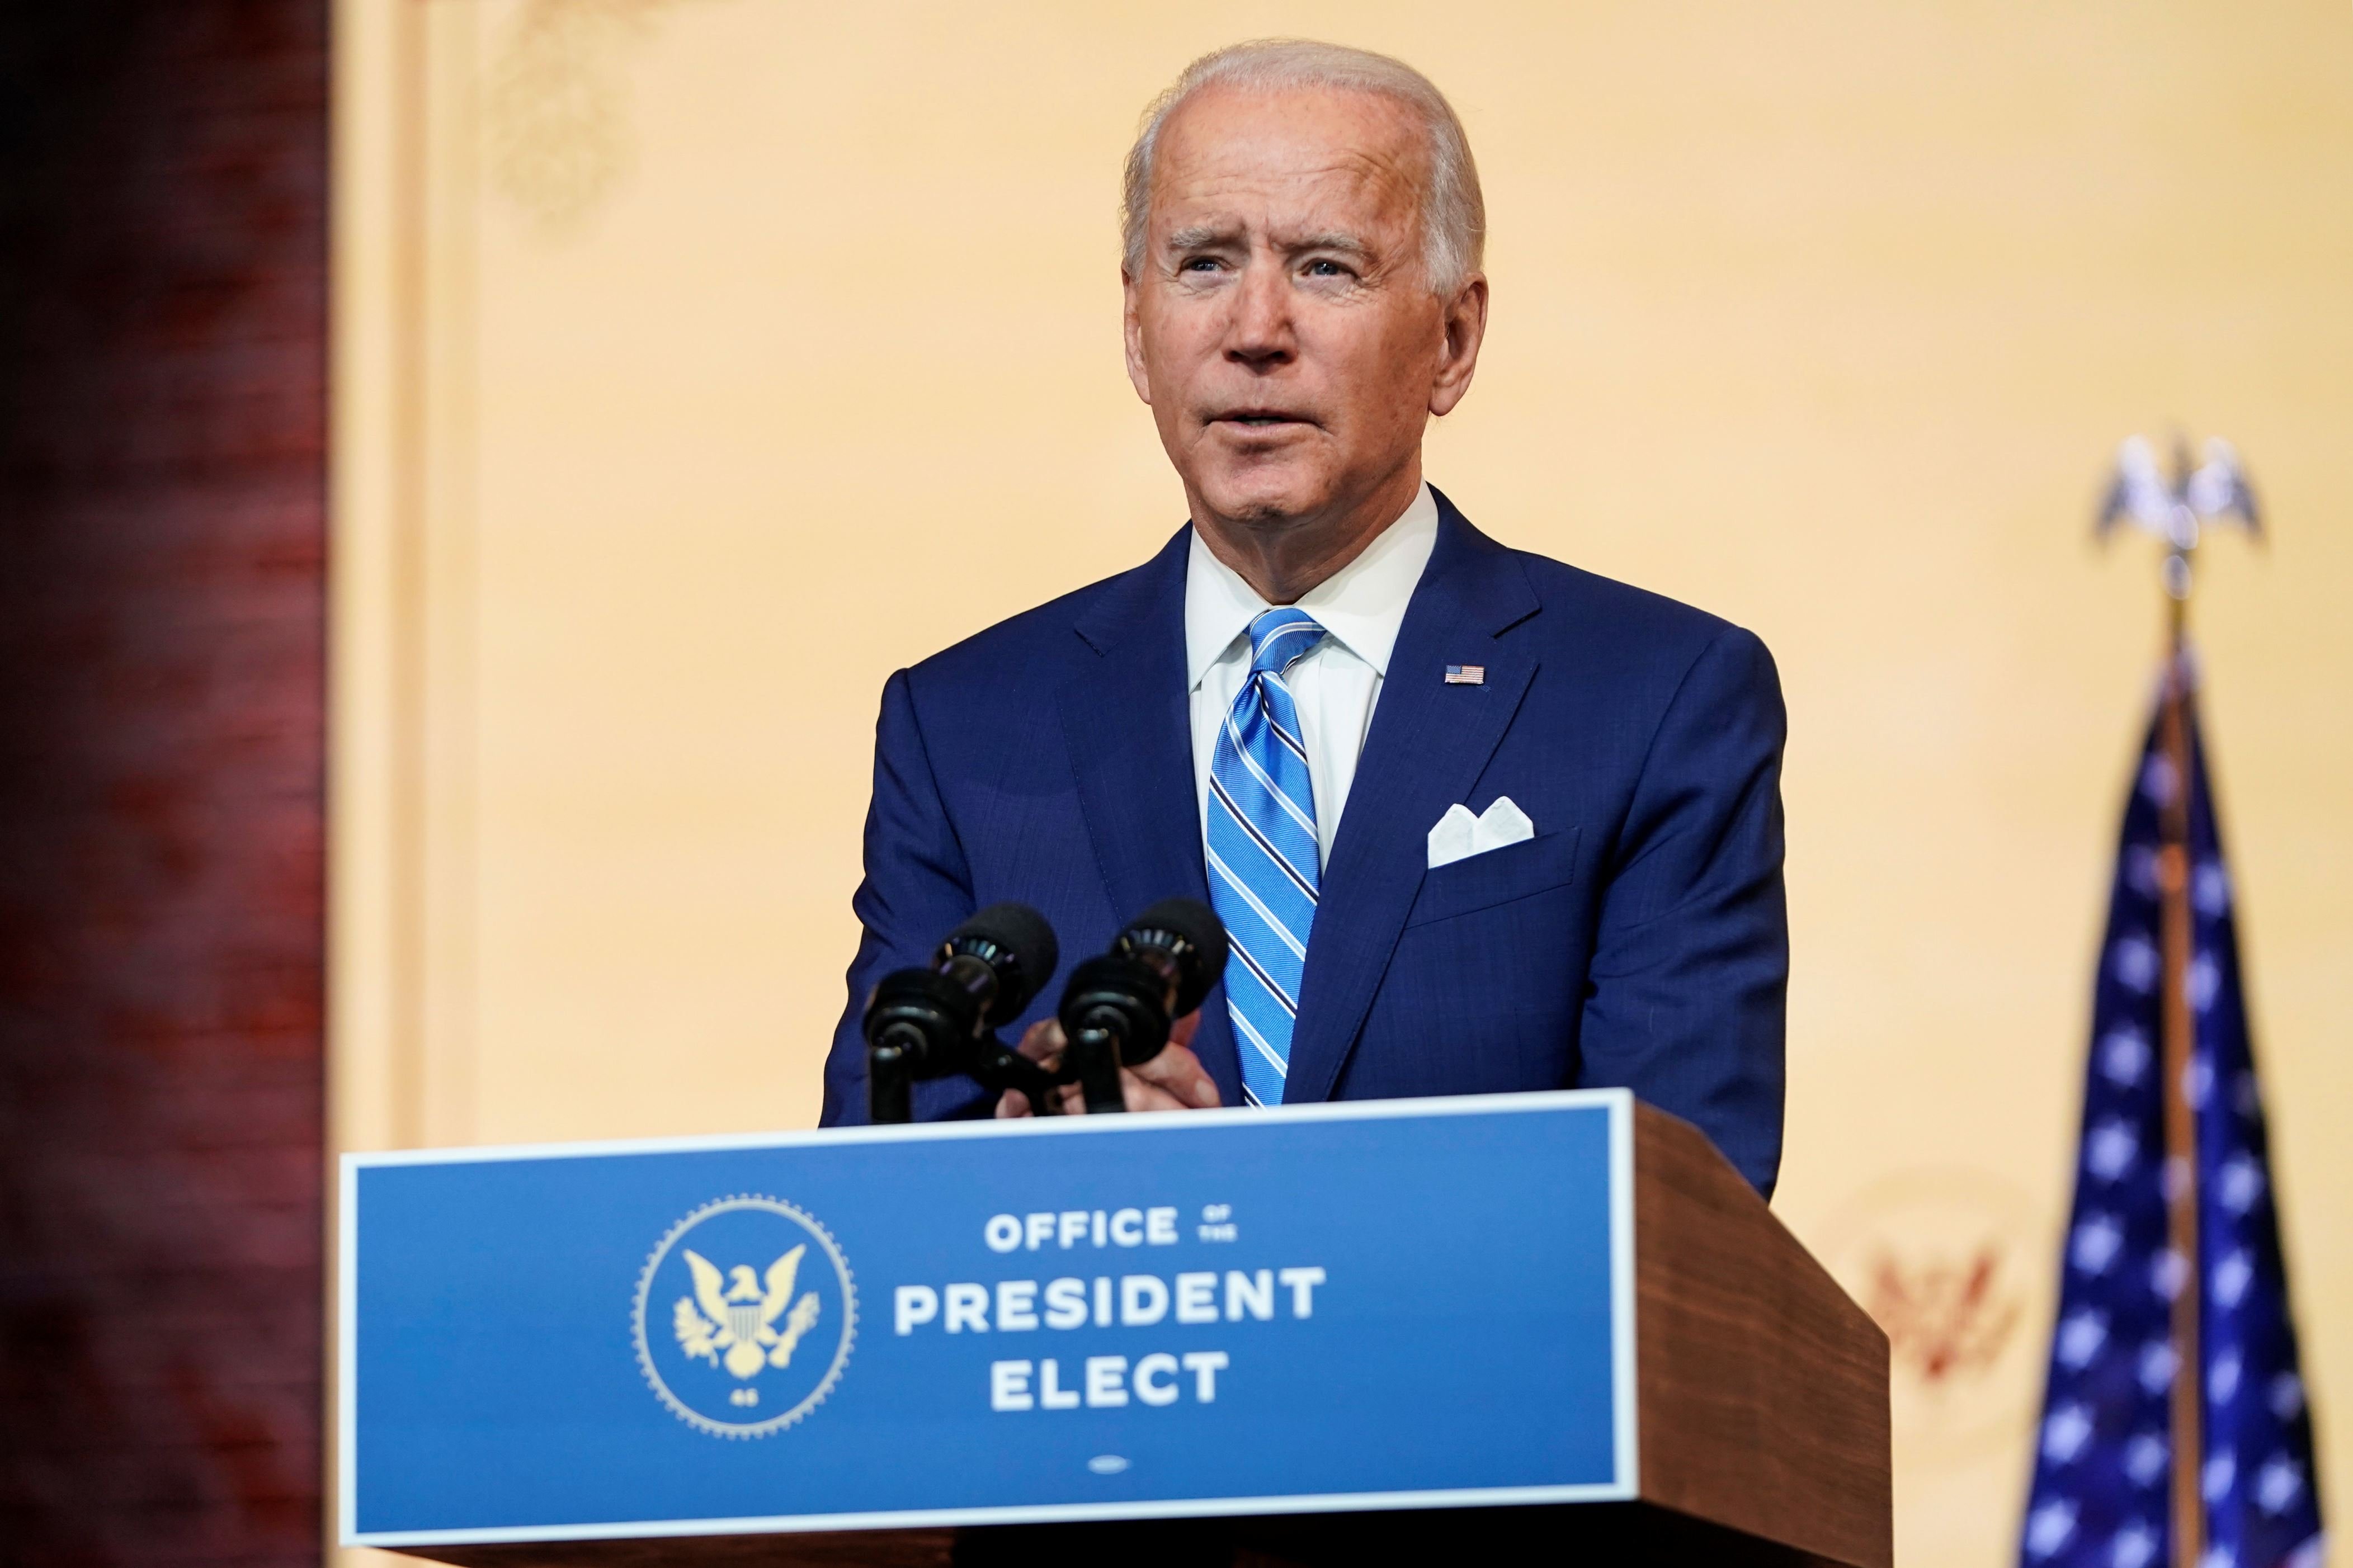 US President-elect Joe Biden may appoint this Indian American as budget chief